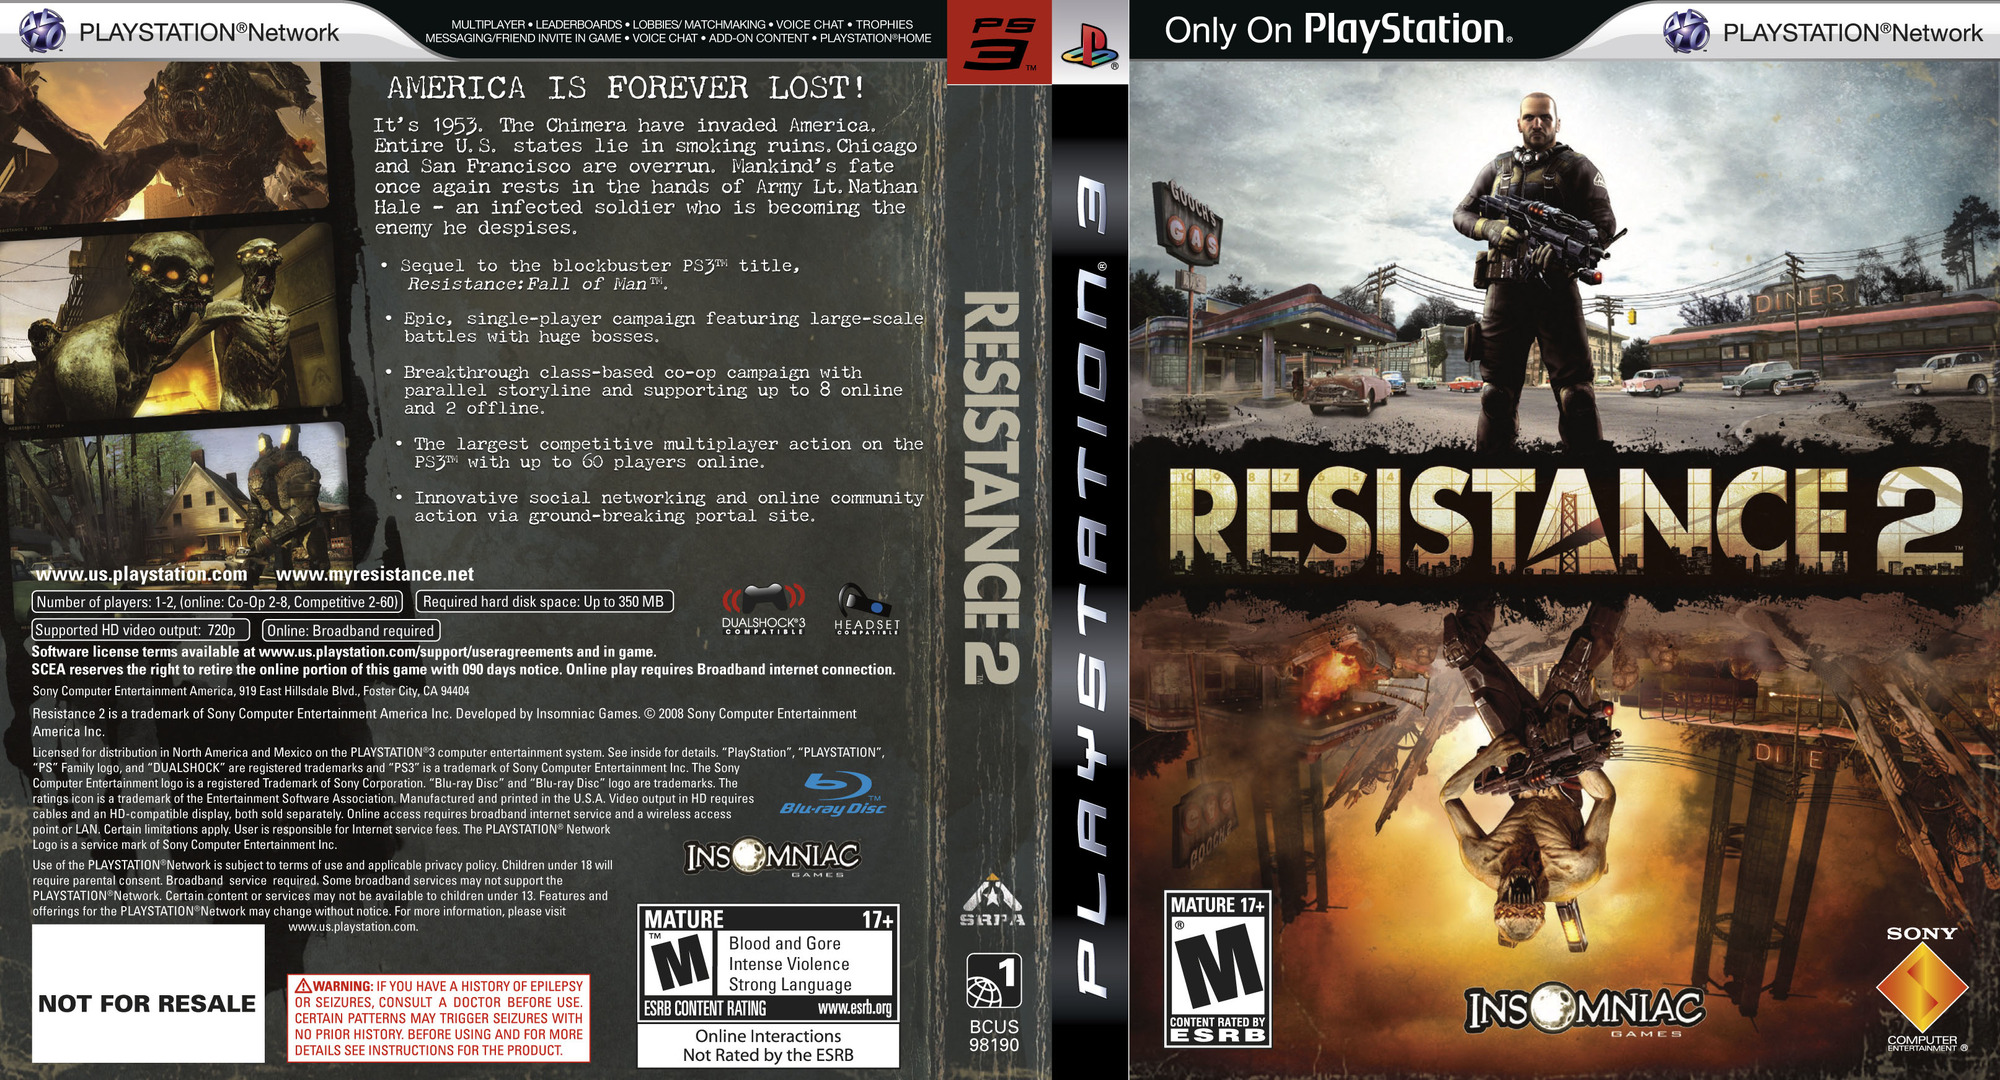 Resistance 2 (Collector's Edition) PS3 coverfullHQ (BCUS98190)